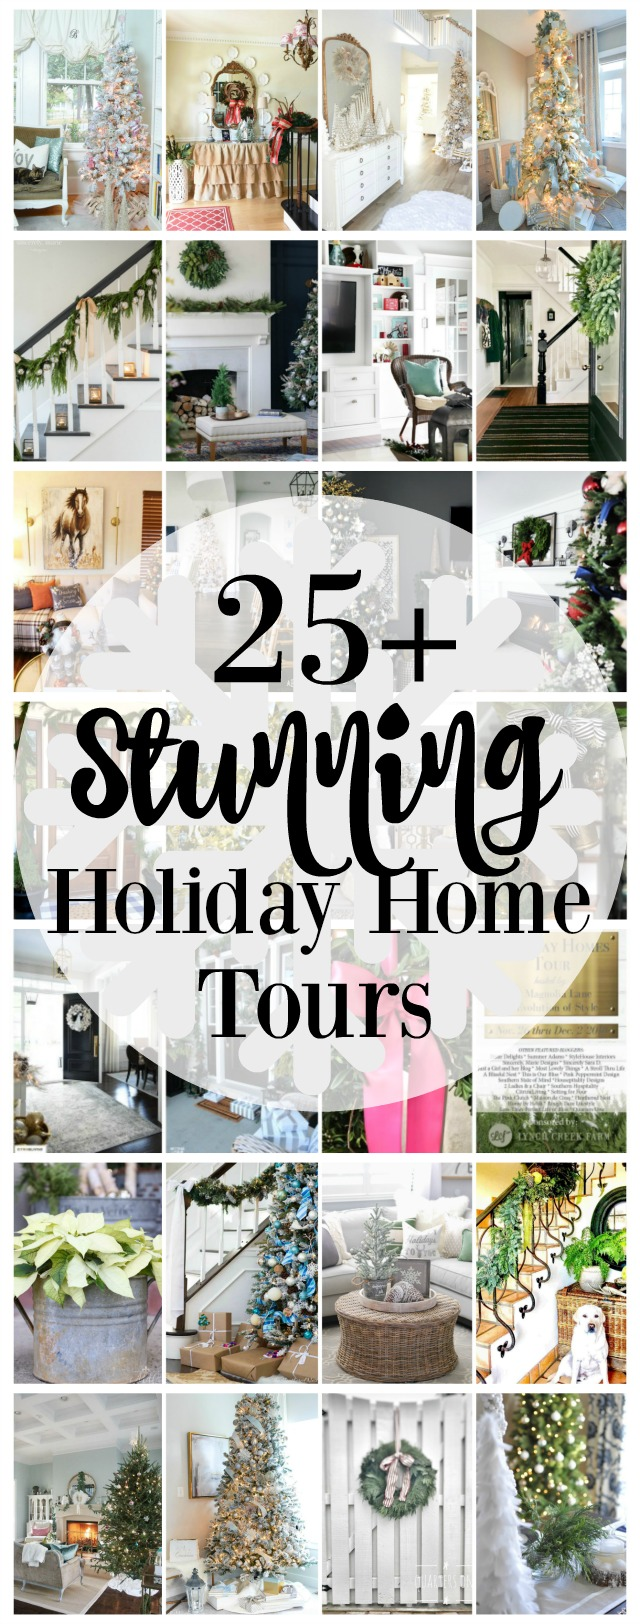 Twenty-seven blogger holiday homes, decorated for Christmas.  So much inspiration for every style of decorating from farmhouse, to preppy, to hygge, to traditional, and more! Hosted by 11 Magnolia Lane and Evolution of Style.